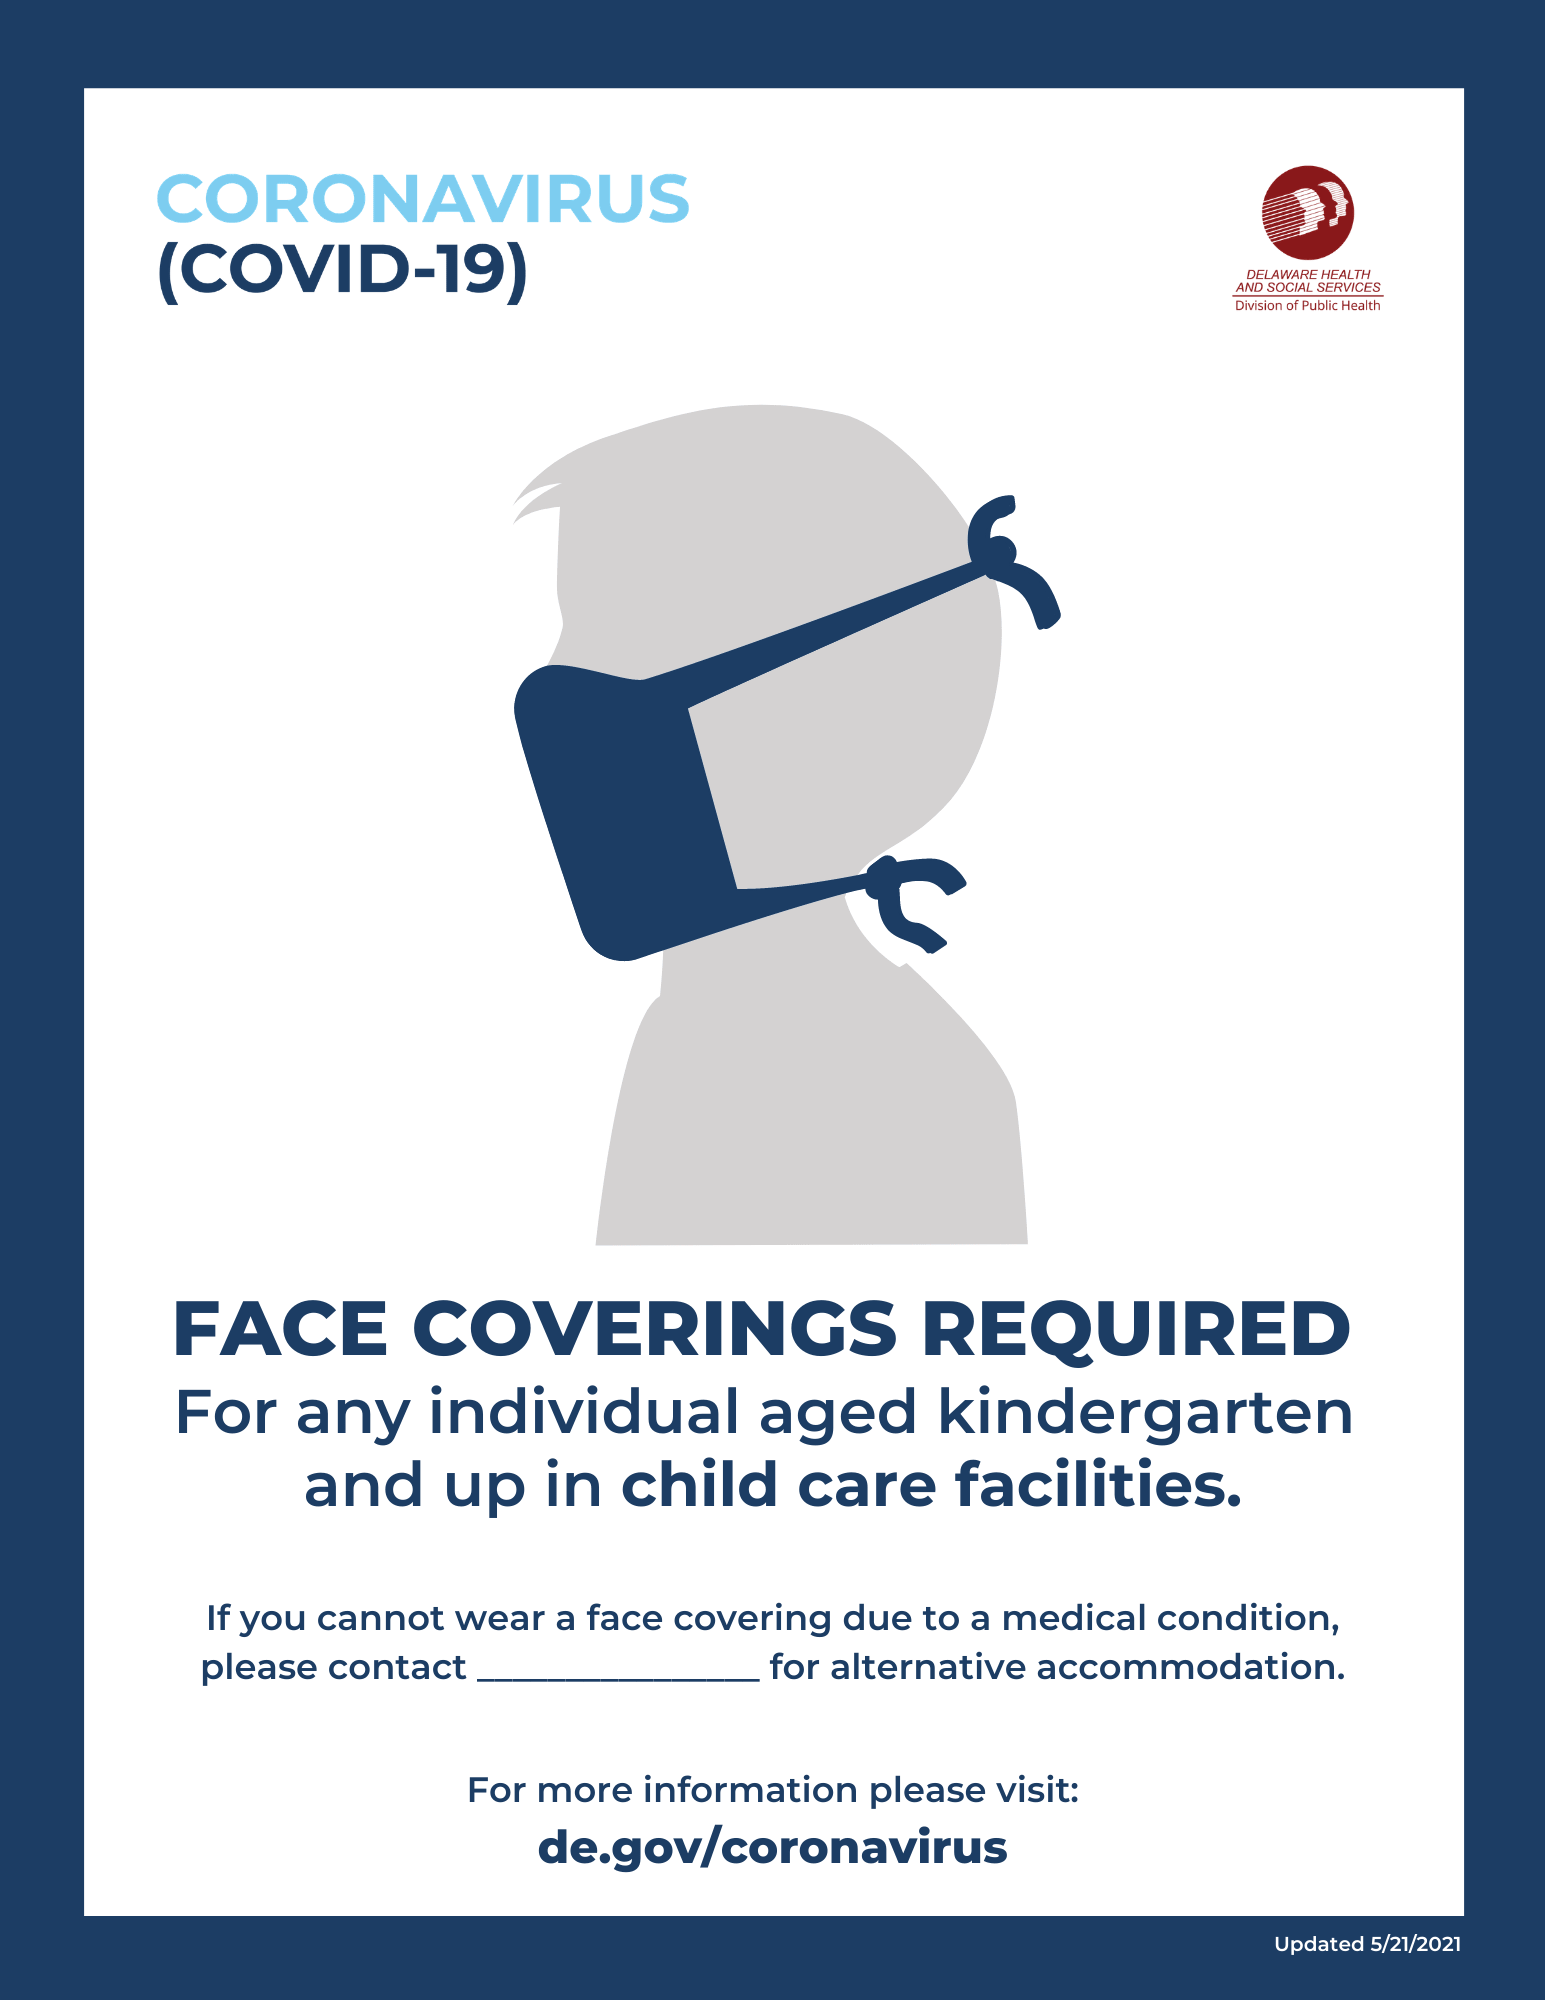 Face coverings are required for ages kindergarten and up within childcare facilities.